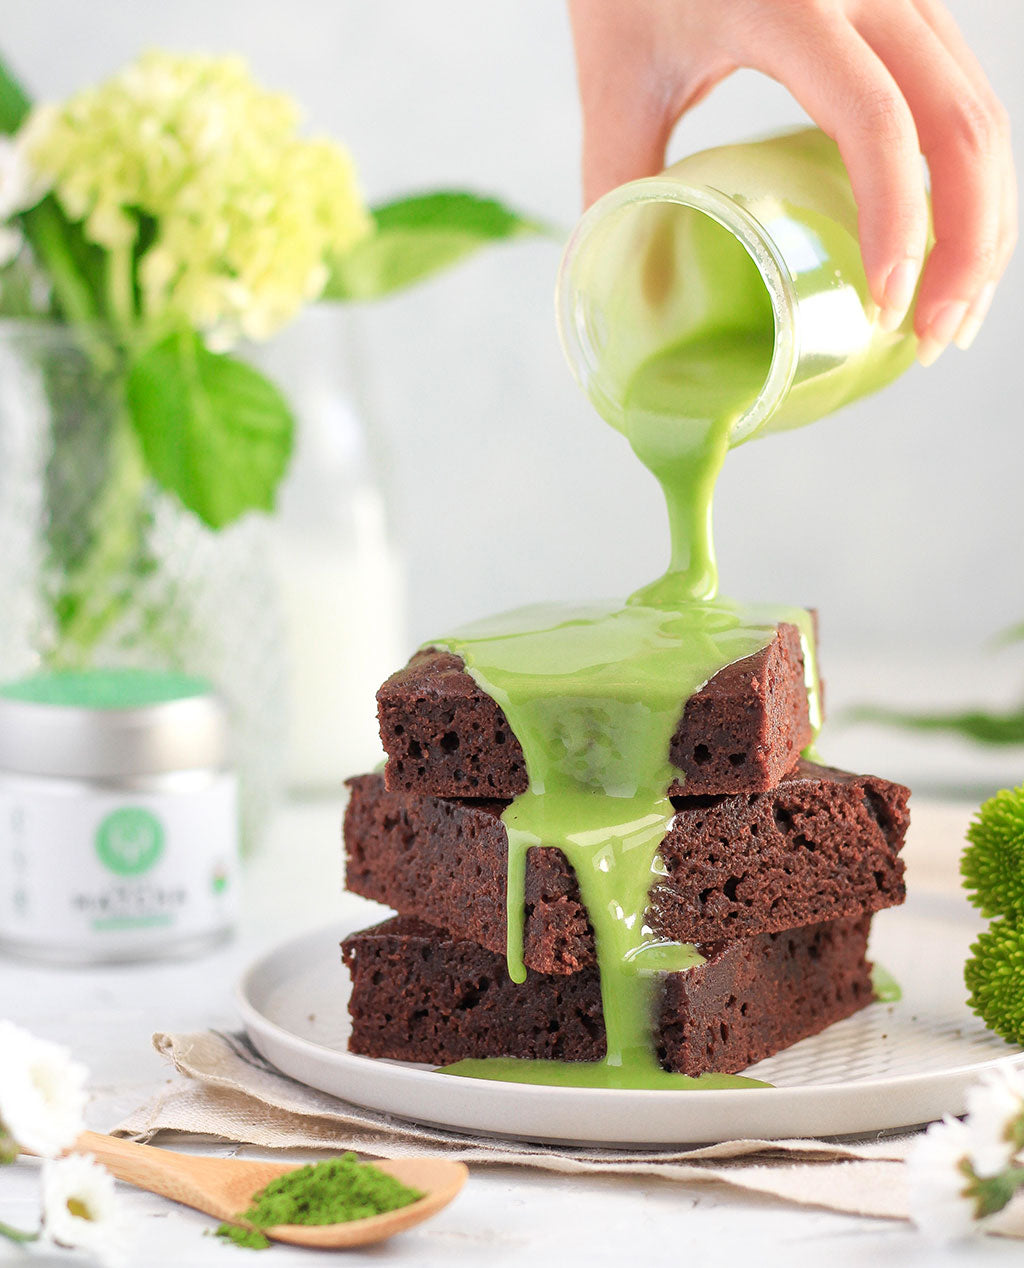 Delicious matcha glaze brownies